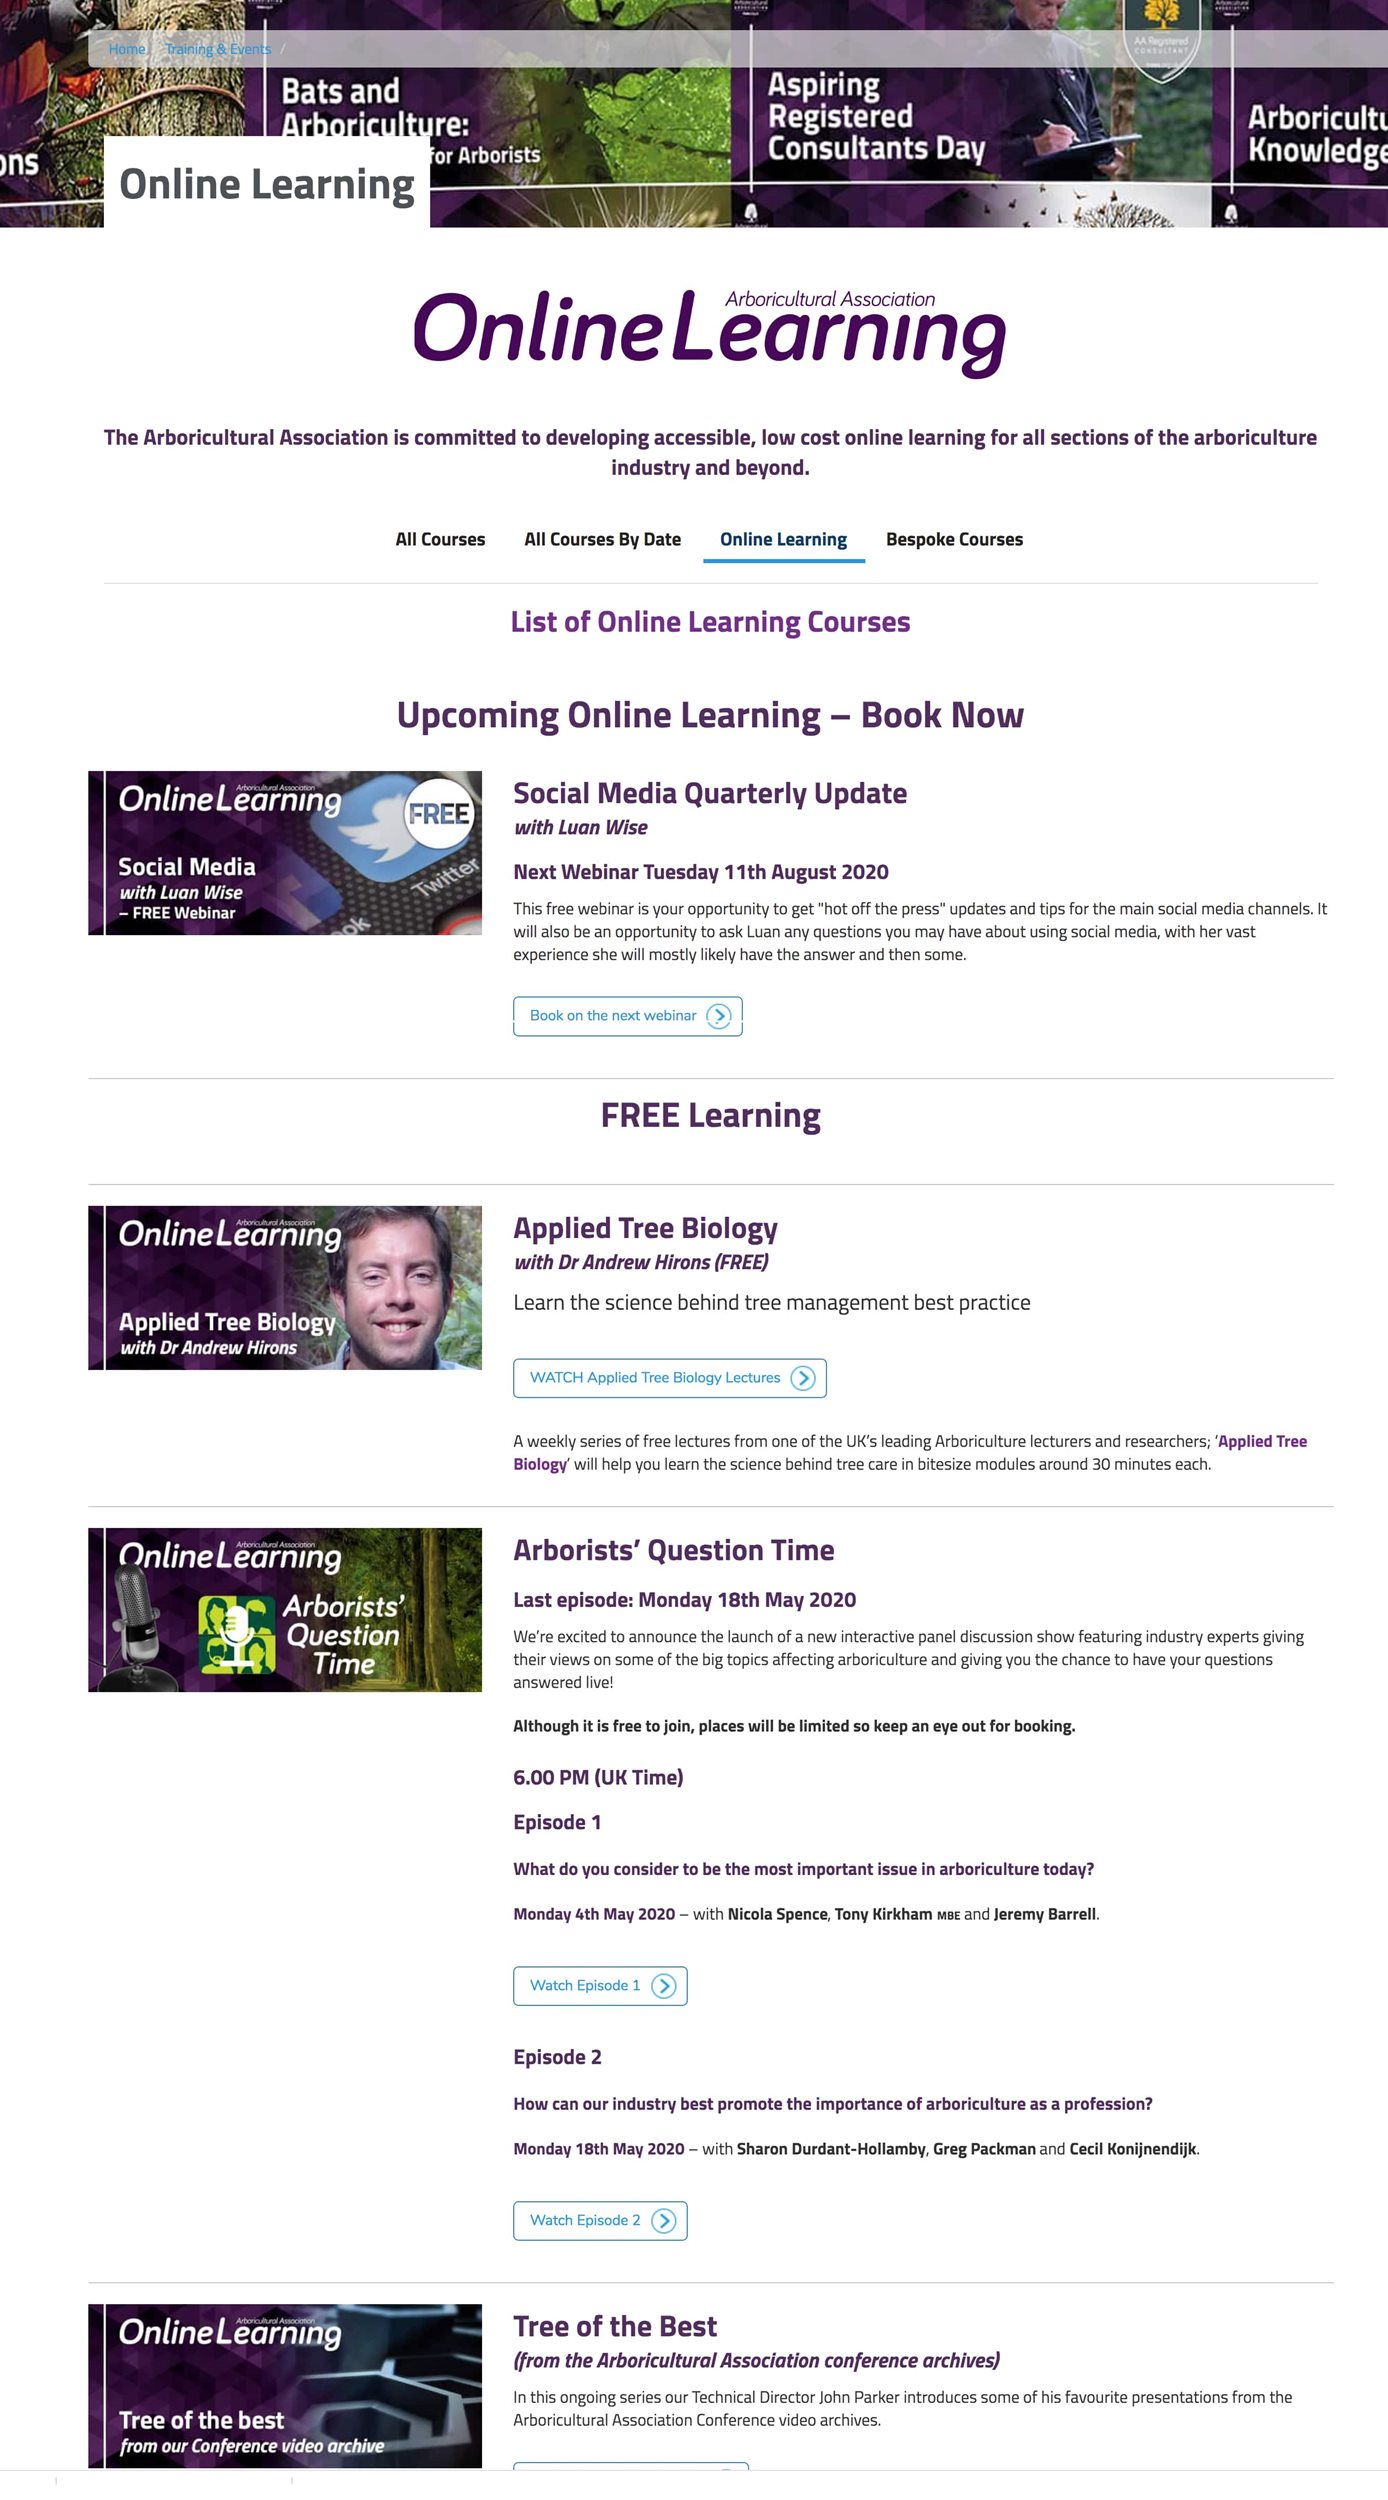 Online Learning page